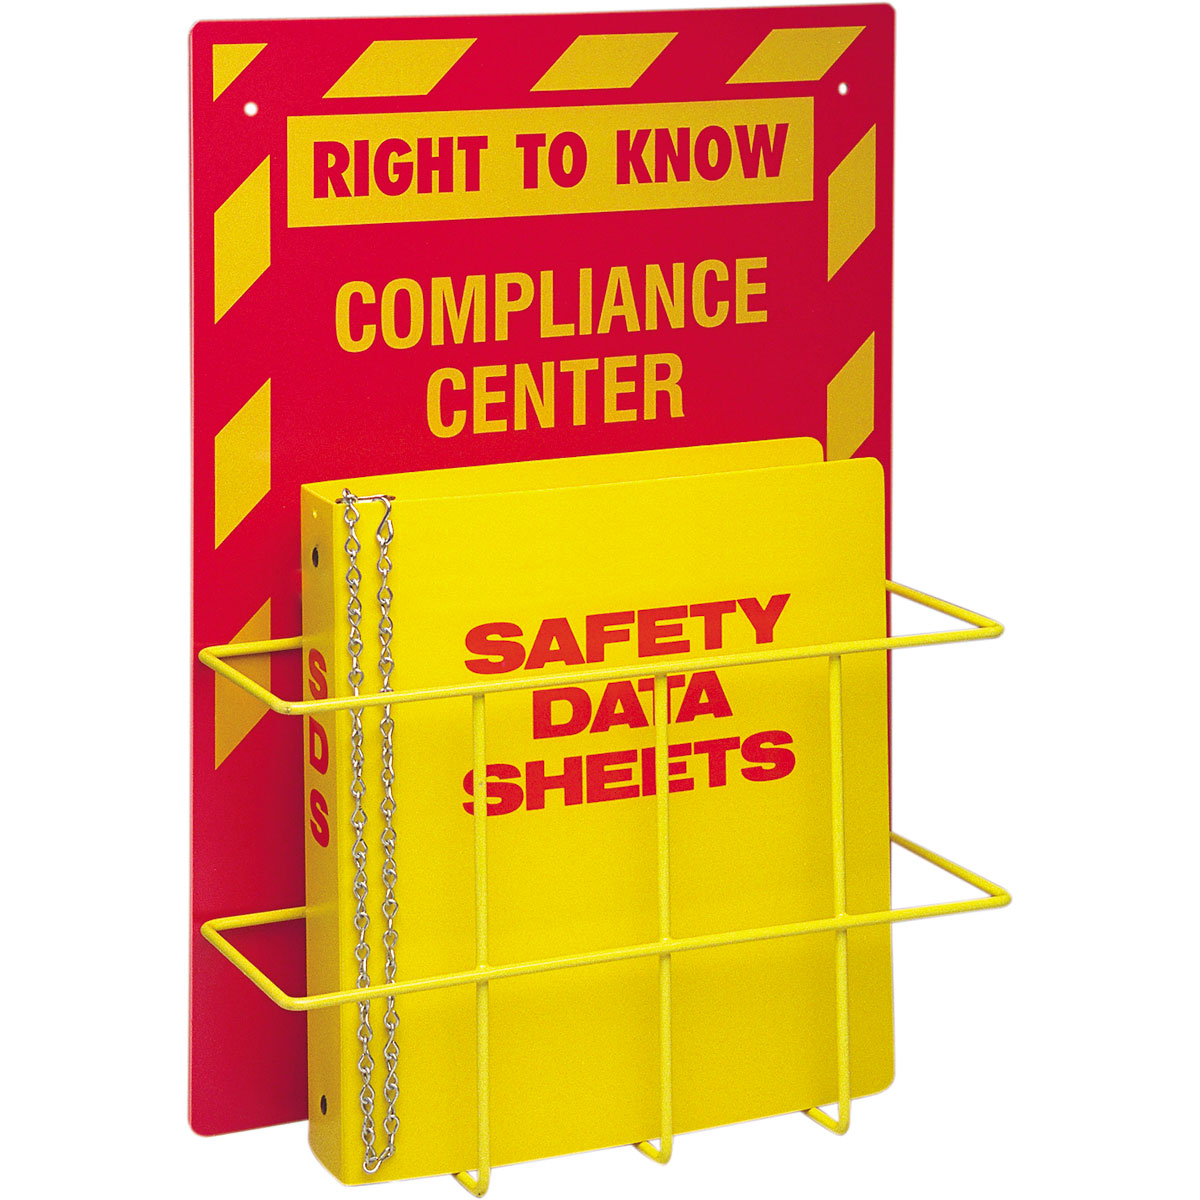 Brady® Prinzing® 2010 Right-To-Know Compliance Center With SDS Binder, RIGHT TO KNOW COMPLIANCE CENTER Legend, English, Yellow on Red, 20 in H x 14 in W, Polystyrene, Wall Mount